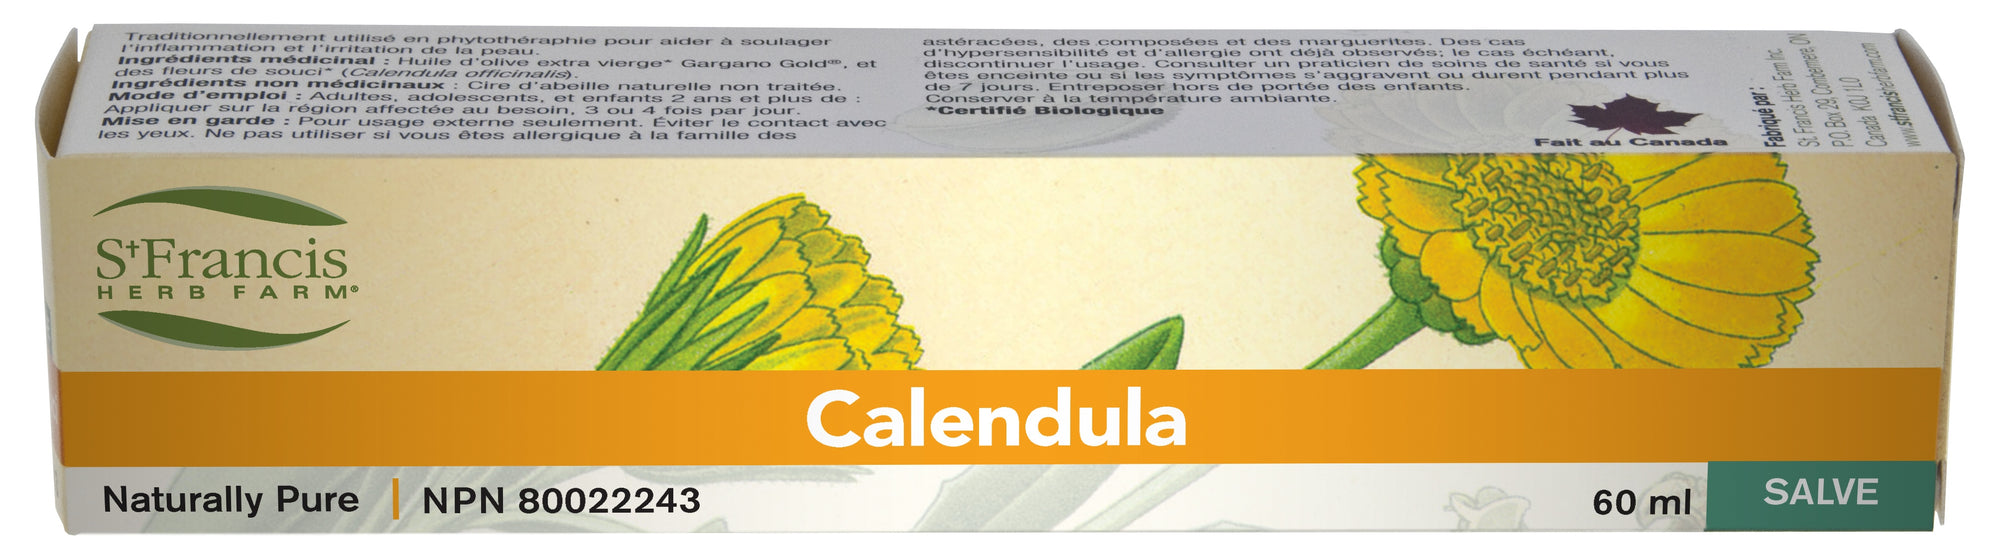 Personal Care - St. Francis Calendula Salve - 60ml